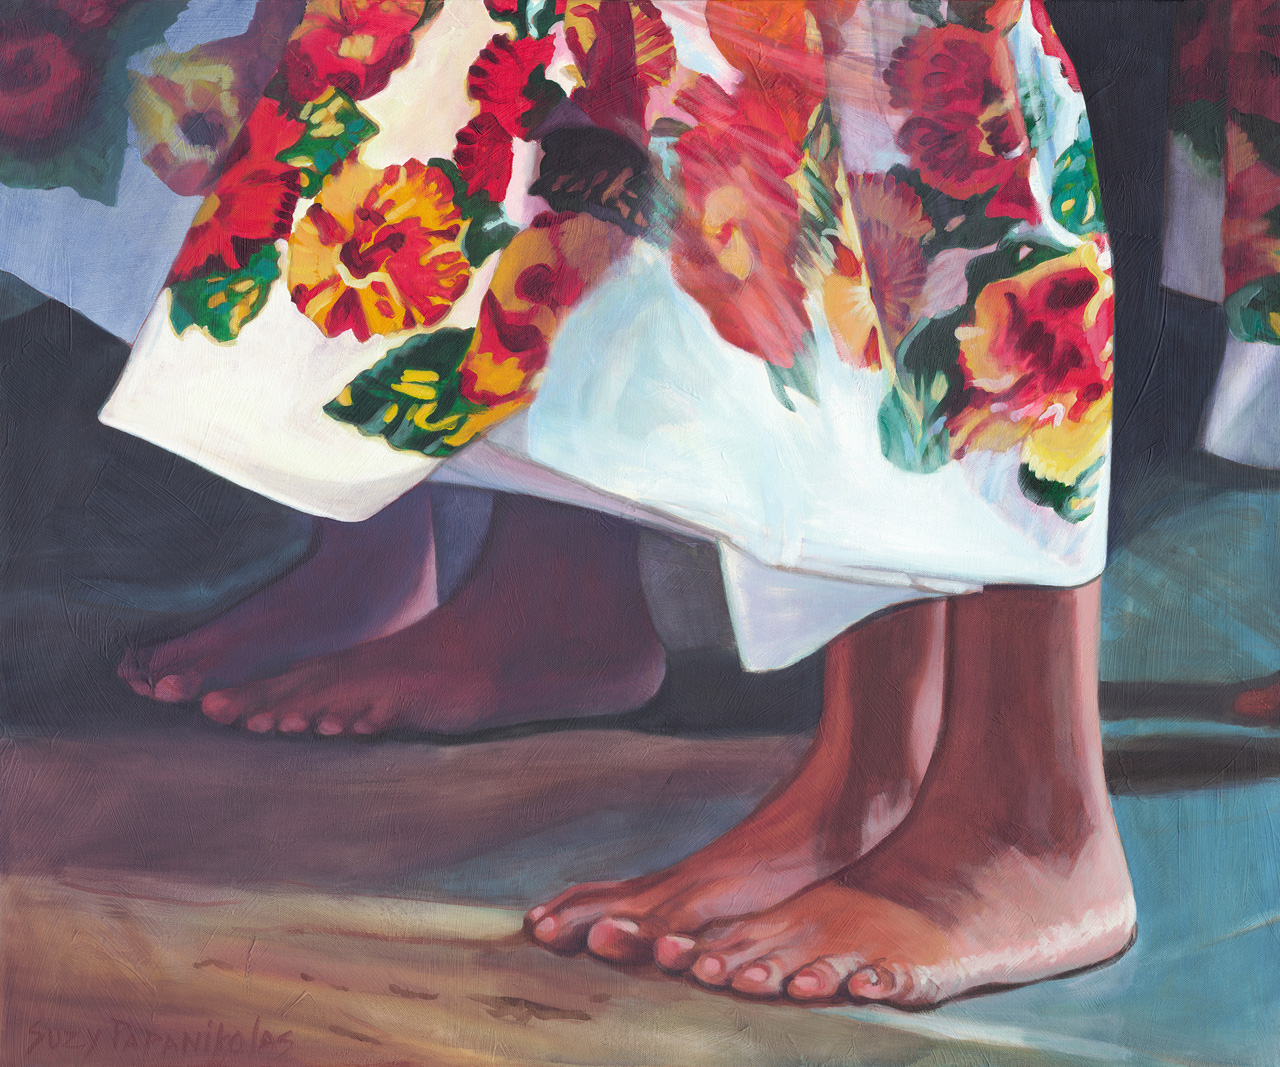 The feet of two hula dancers with a colorful hibiscus flower hula skirt